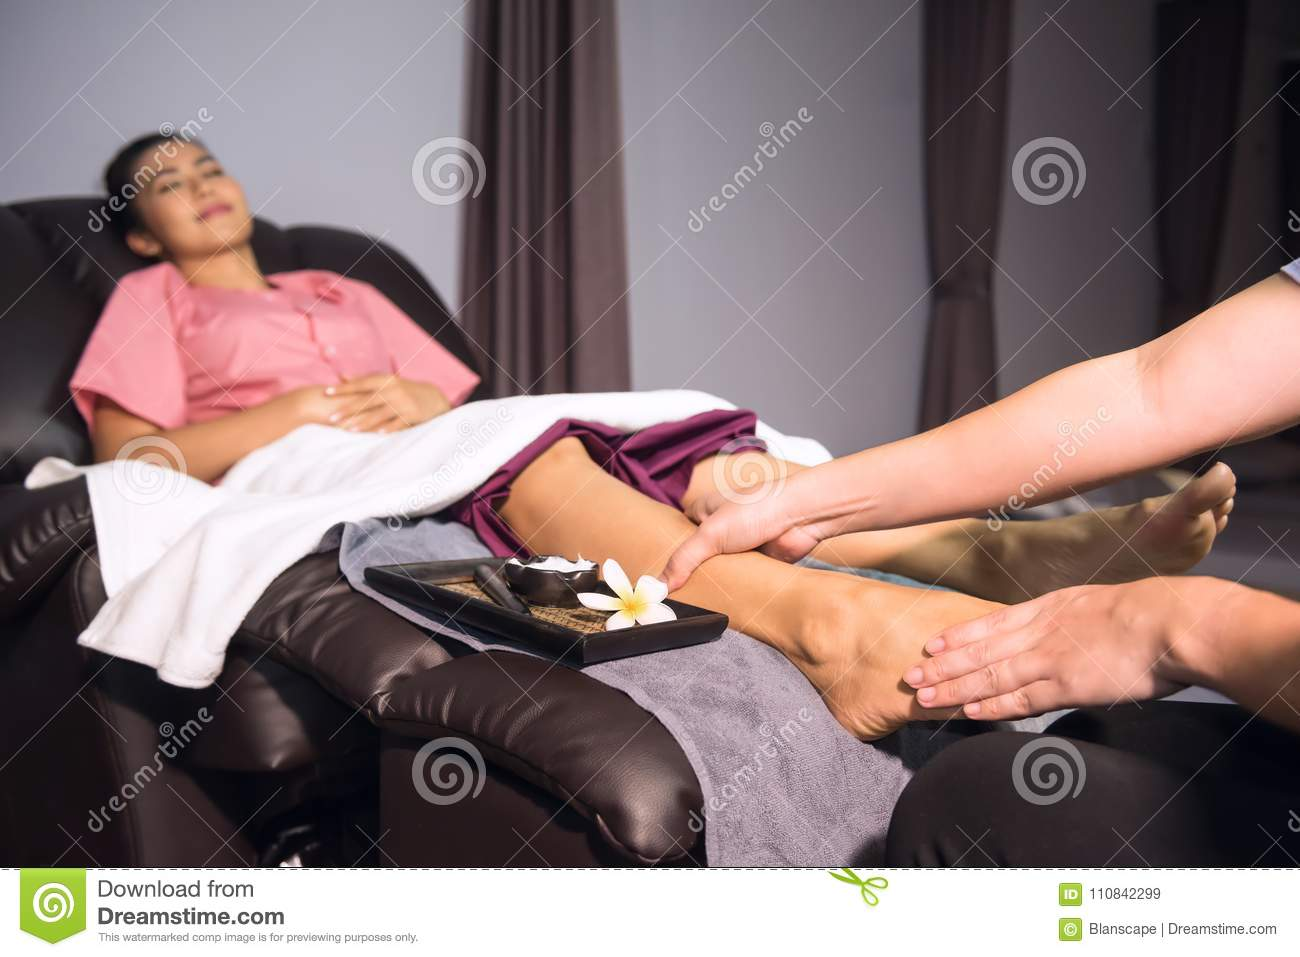 thai original massage foot spa stock image - image of feet